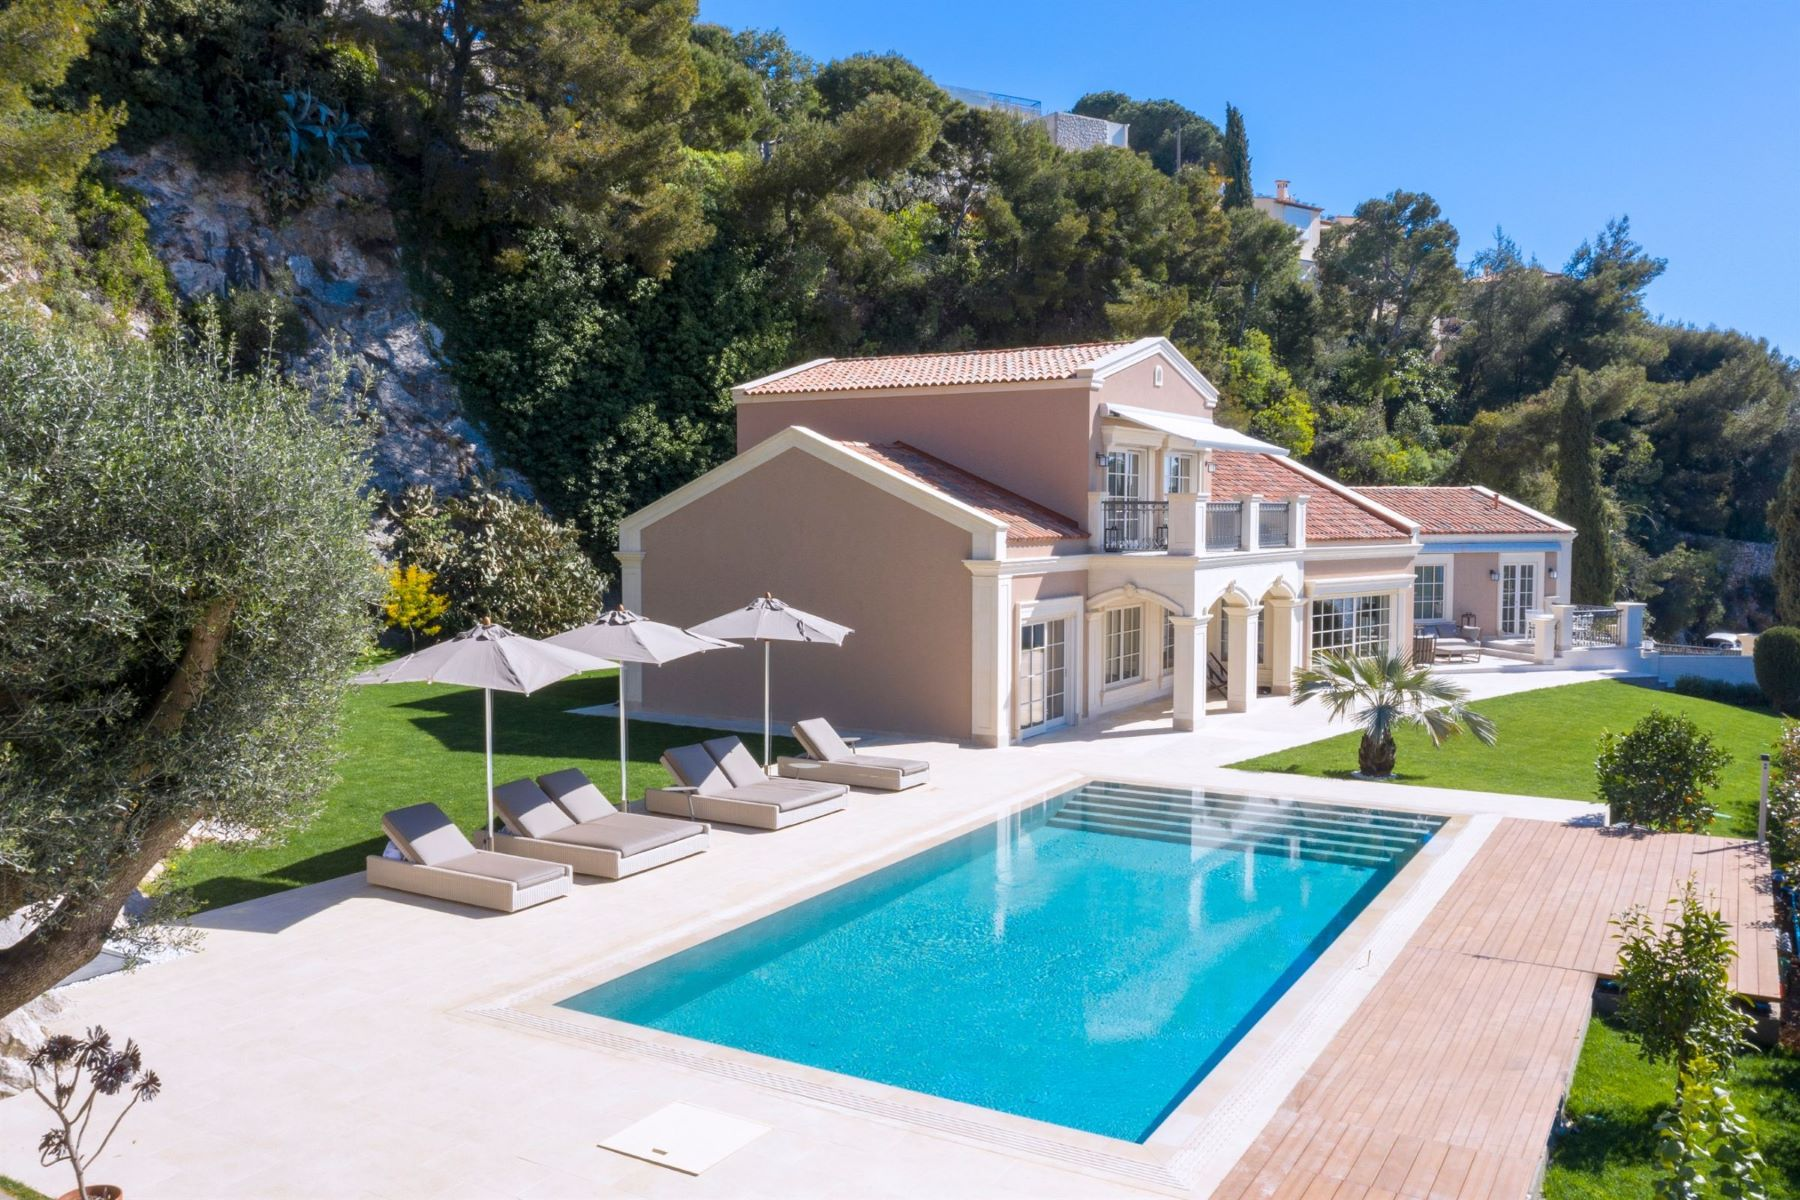 Single Family Home for Sale at Brand New Property facing Monaco Roquebrune Cap Martin, Provence-Alpes-Cote D'Azur 06190 France